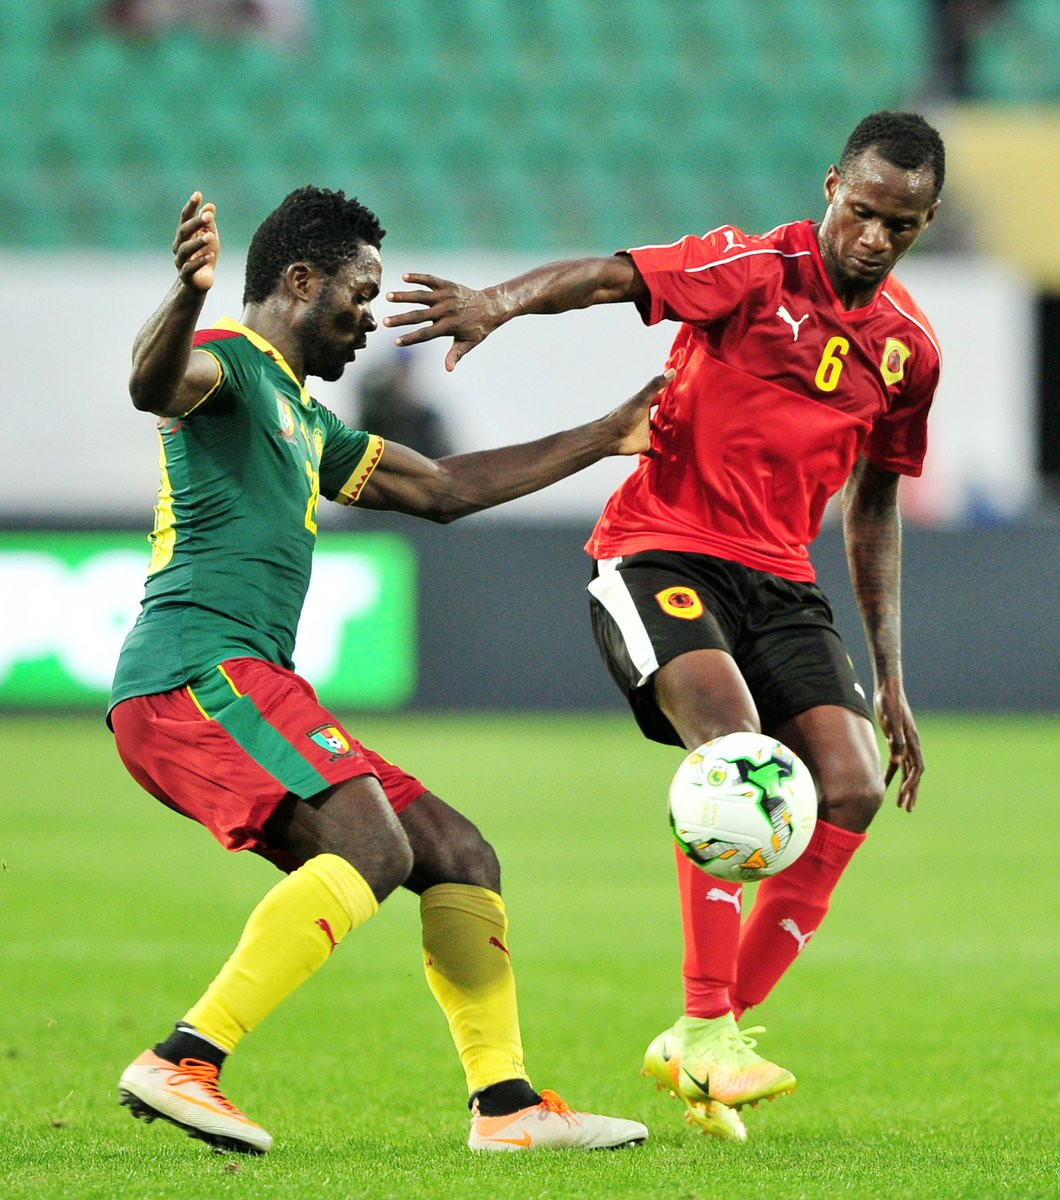 Angola confirm place in knockout round at African Nations Championship